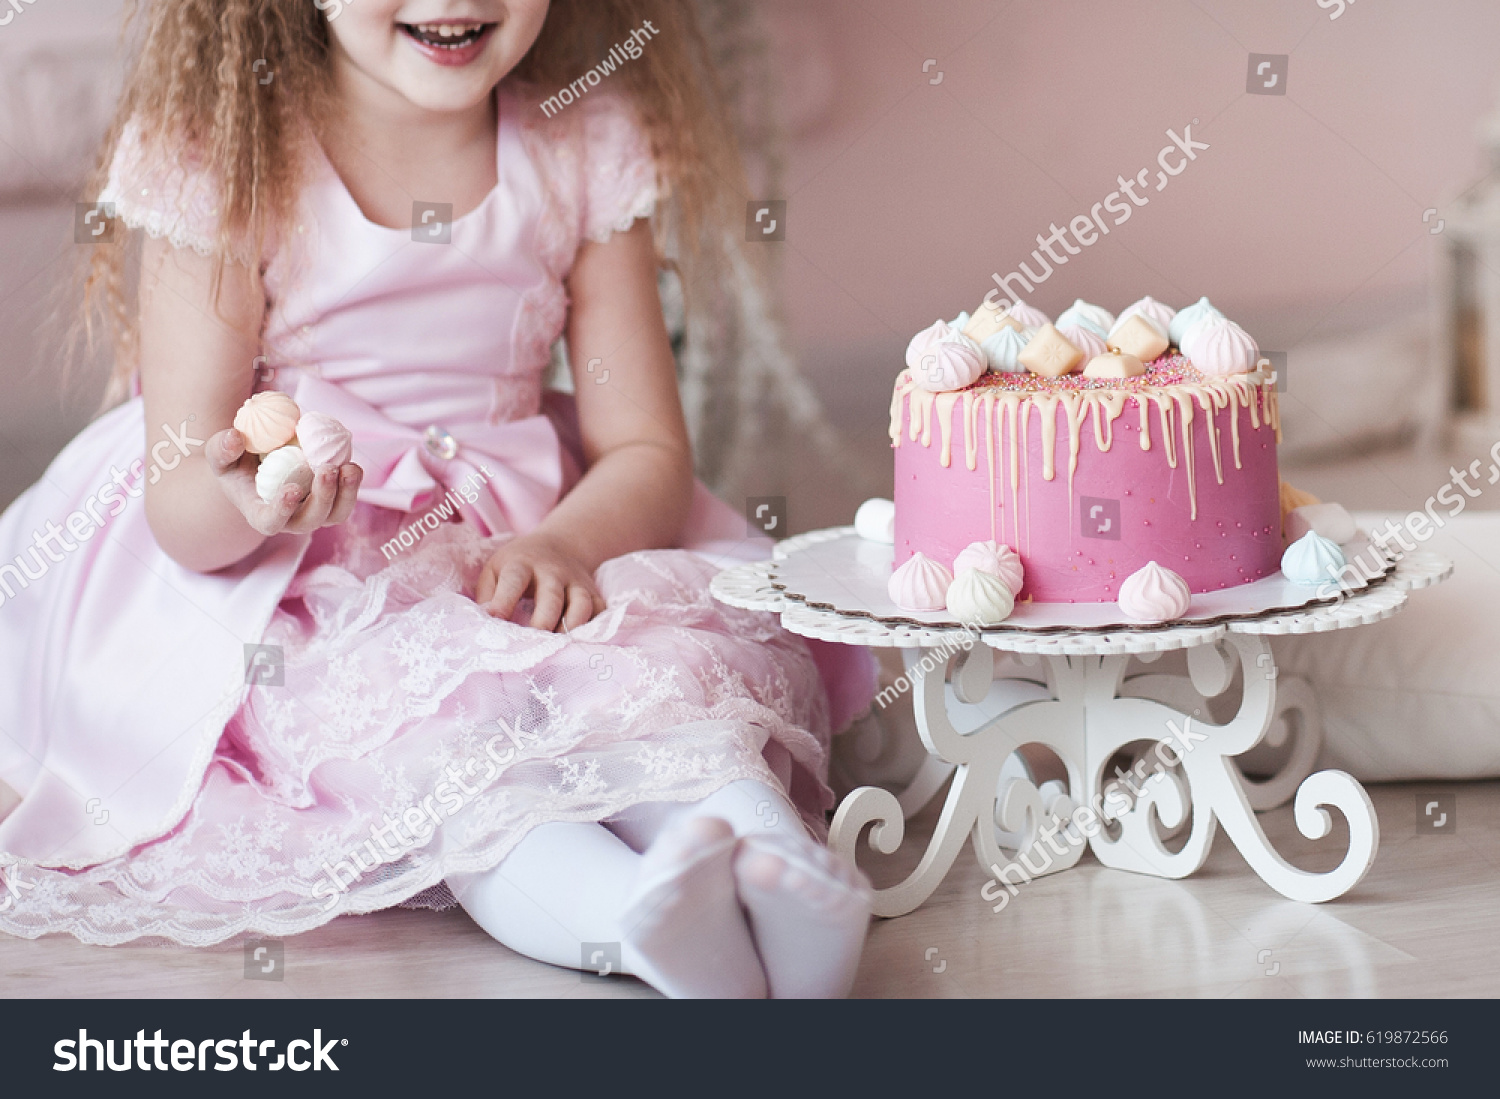 Amazing Kid Girl 45 Year Old Eating Stock Photo Edit Now 619872566 Funny Birthday Cards Online Fluifree Goldxyz